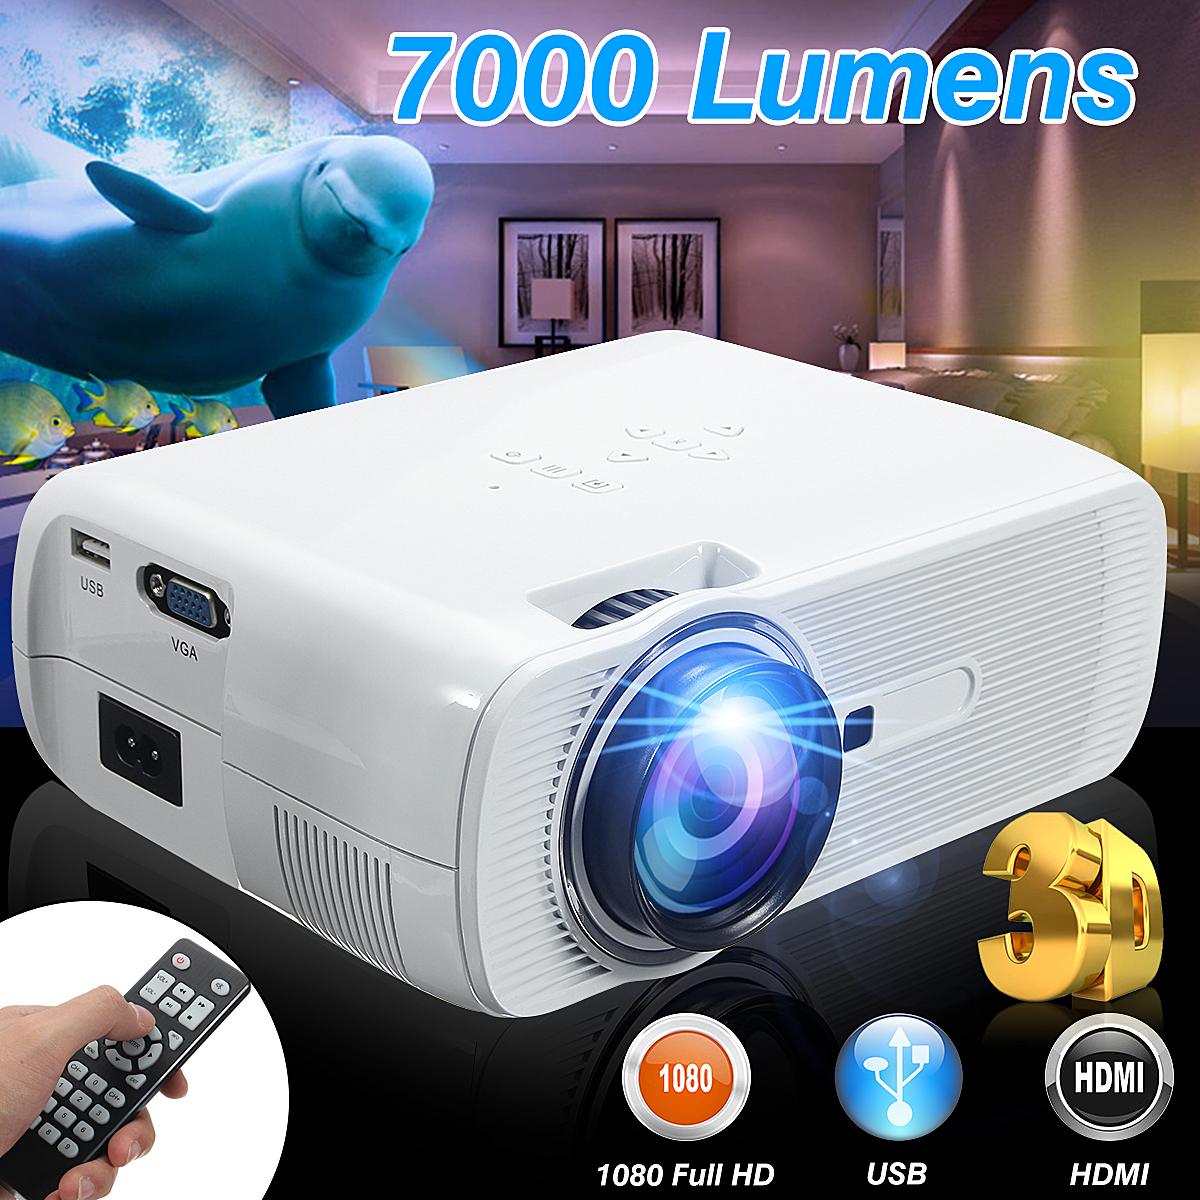 Portable Wireless 7000 Lumens Full HD LED Projector 3D Projection Home Theater Cinema LCD HDMI USB AV/VGA Multimedia Beamer стоимость